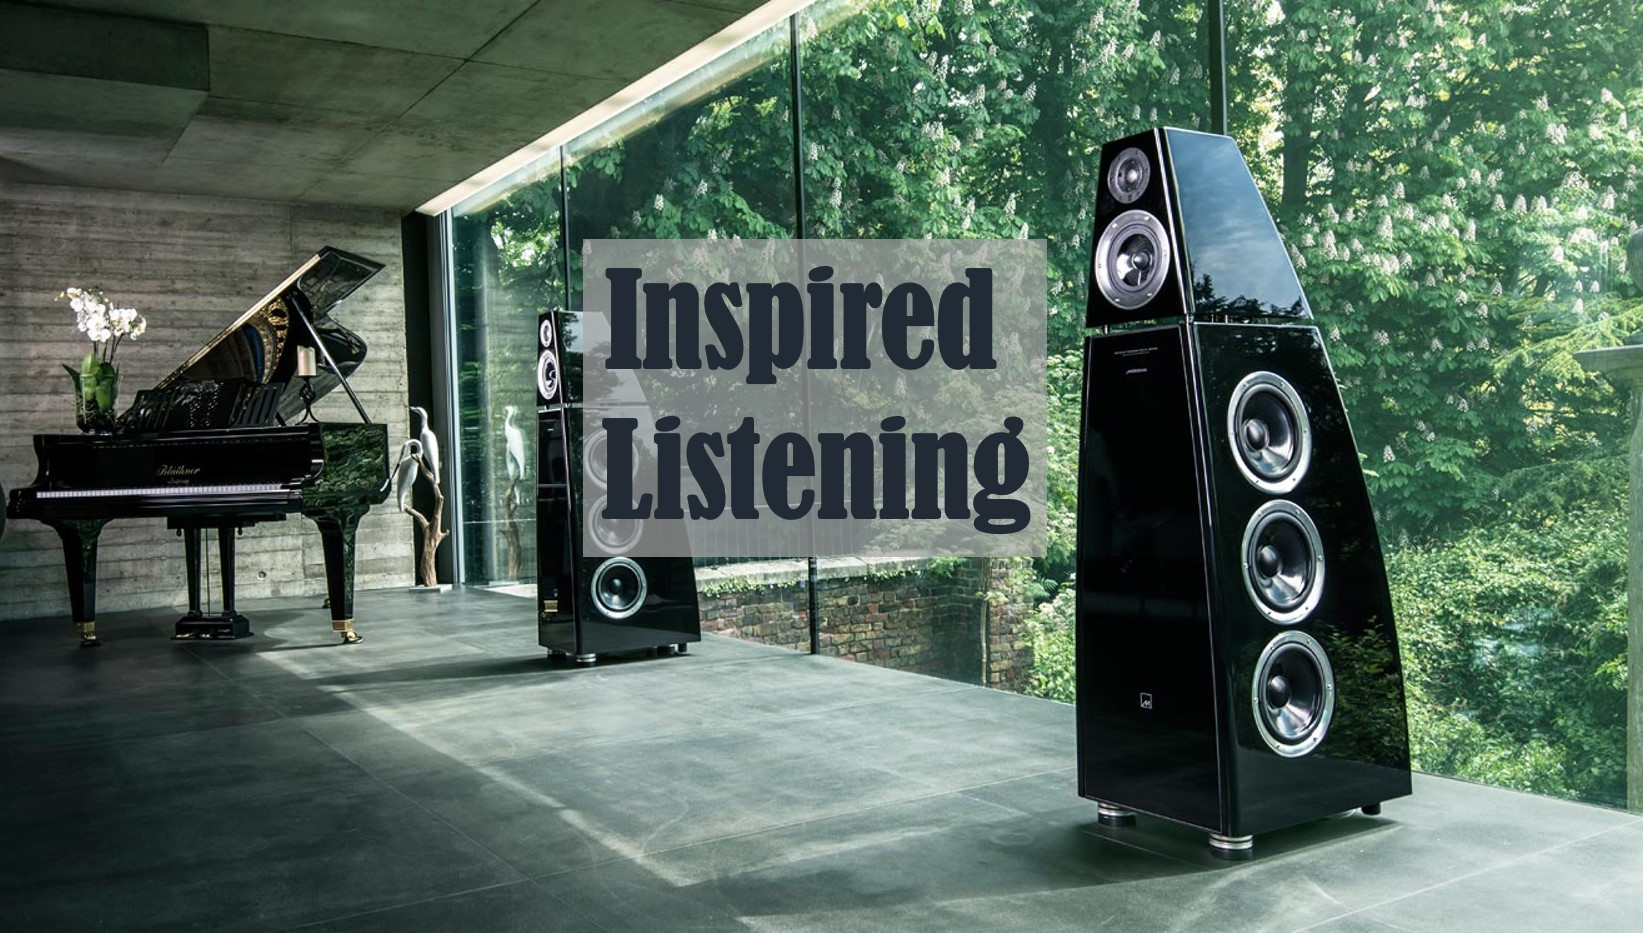 WE TAKE YOU TO THE ICONIC CITY OF CAMBRIDGE TO LEARN THE ART OF TRUE LISTENING WITH OUR AUDIO PARTNER. INSPIRATION BY LISTENING TO THE WORLD'S BEST AUDIO TO OPEN YOUR MIND TO A NEW LEVEL OF PERCEPTION.